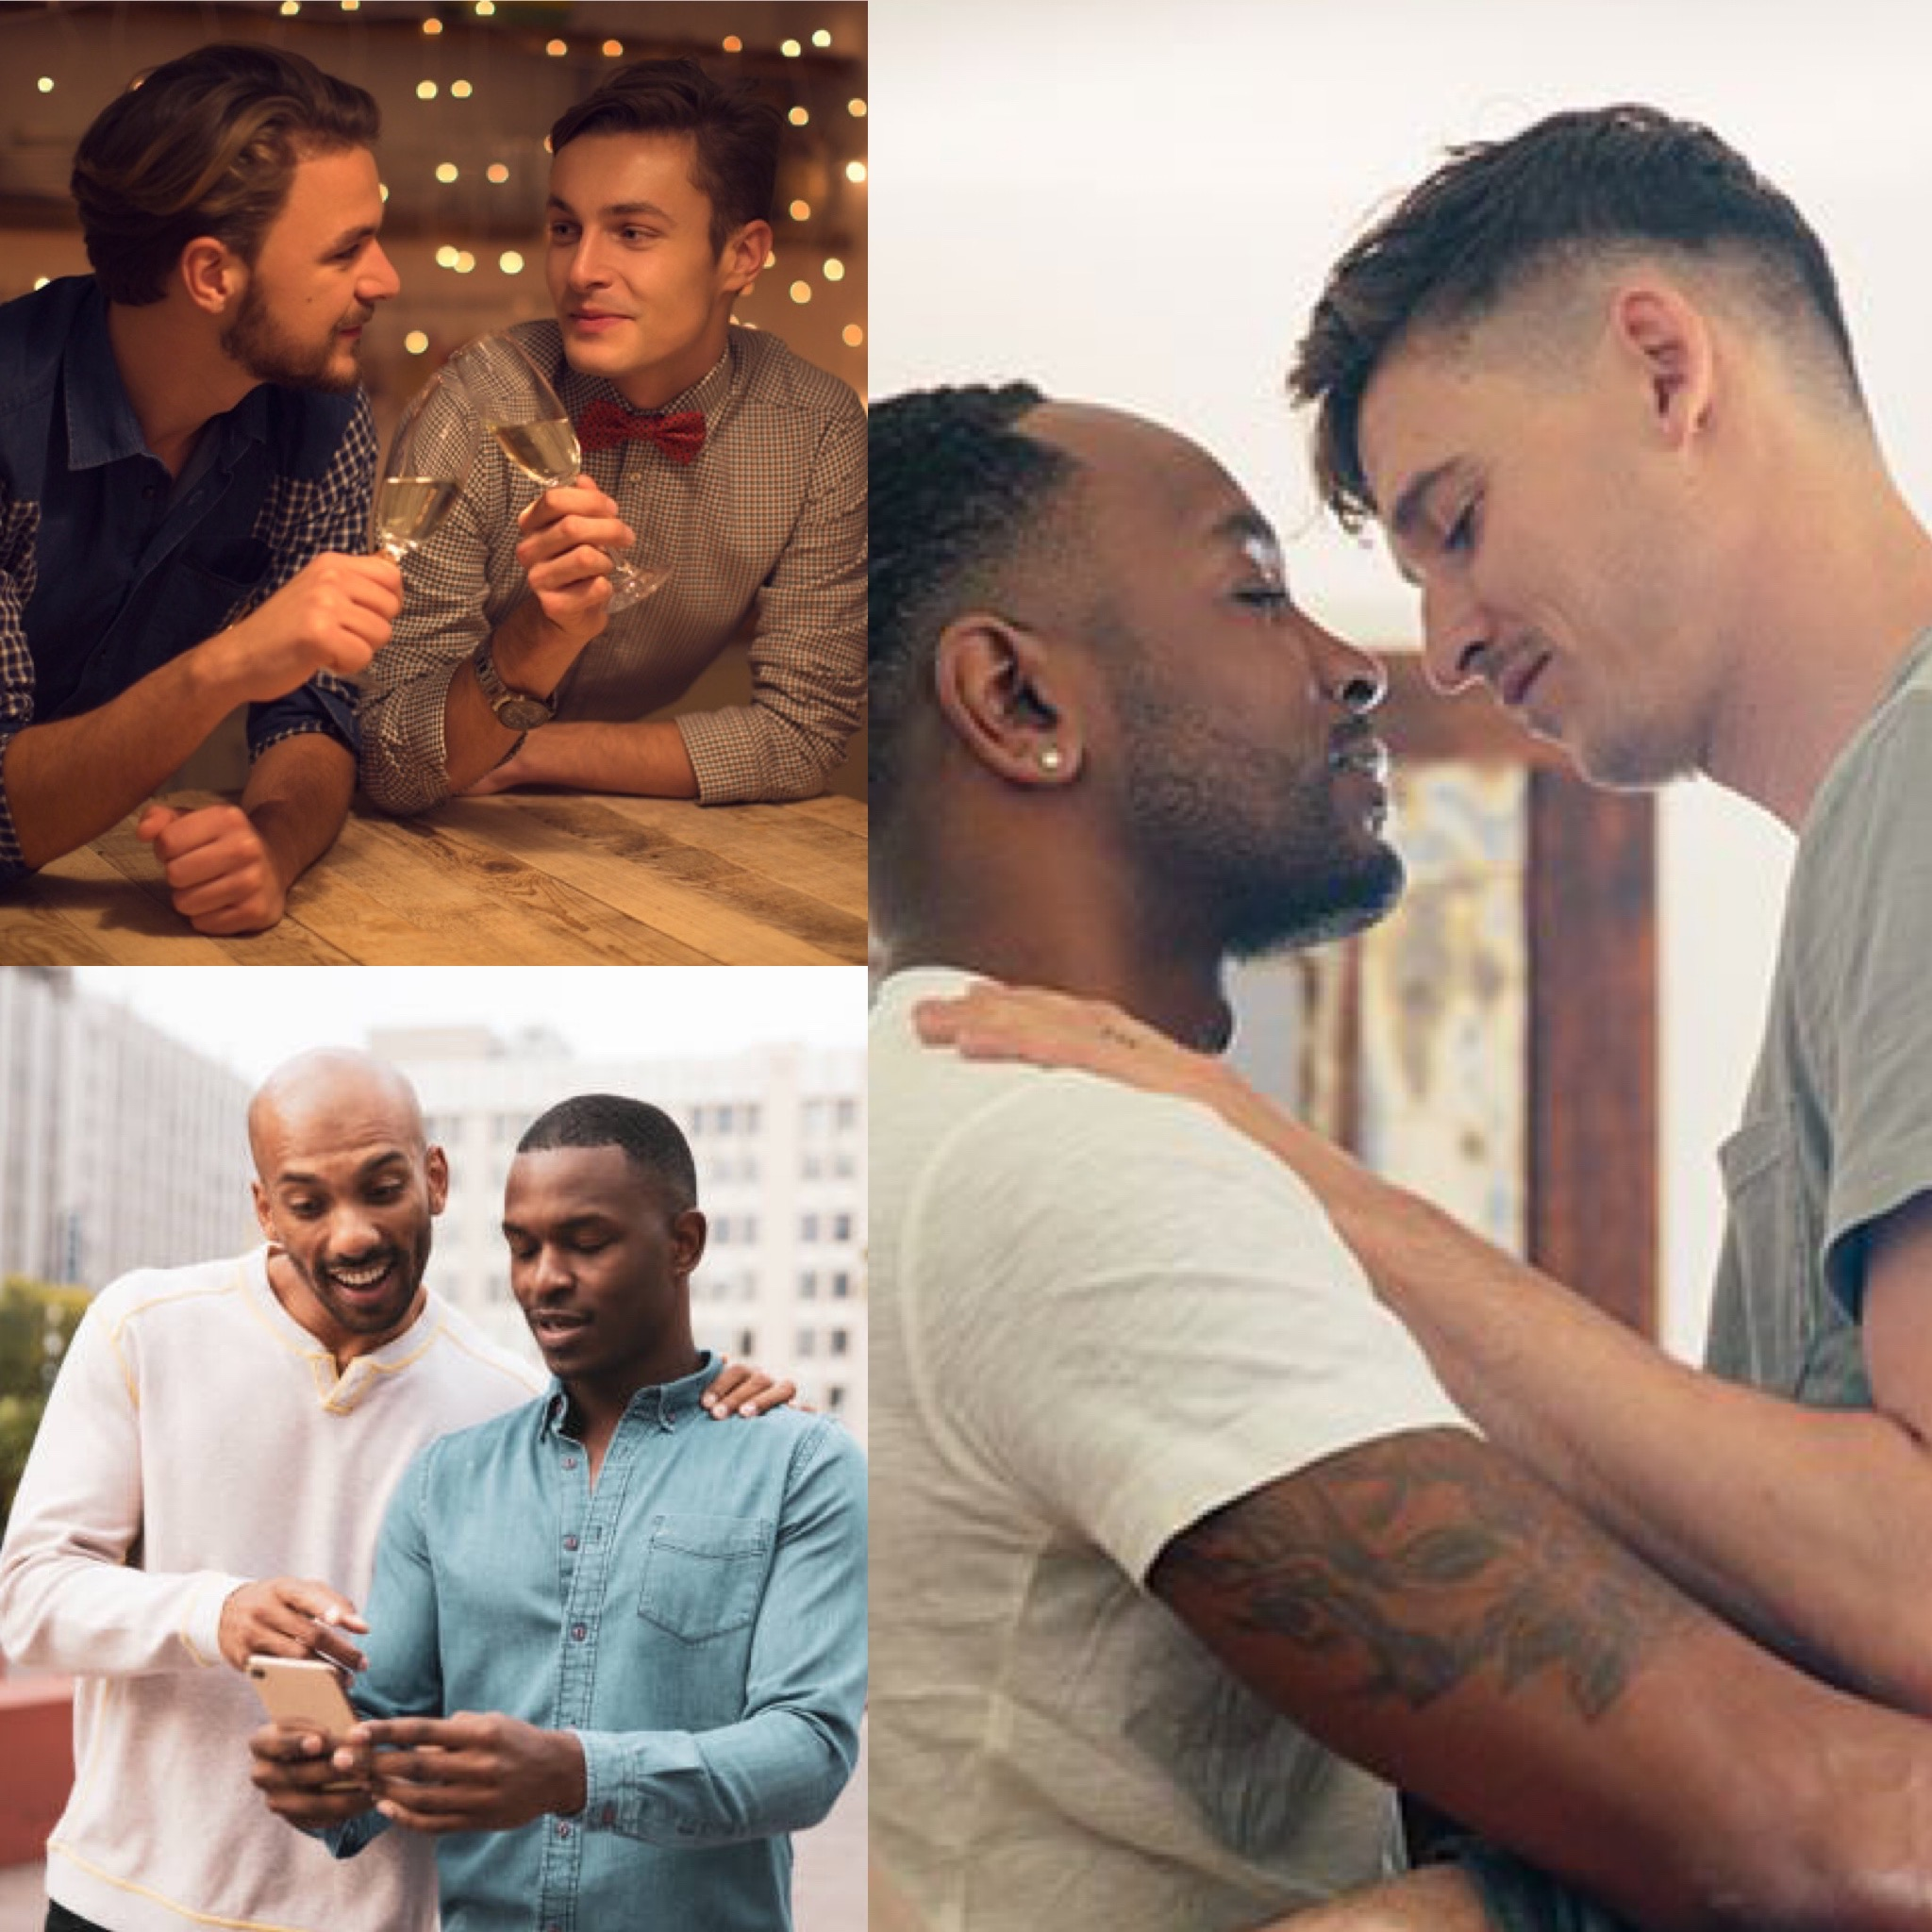 D'Bunked: Dating advice and top tips!